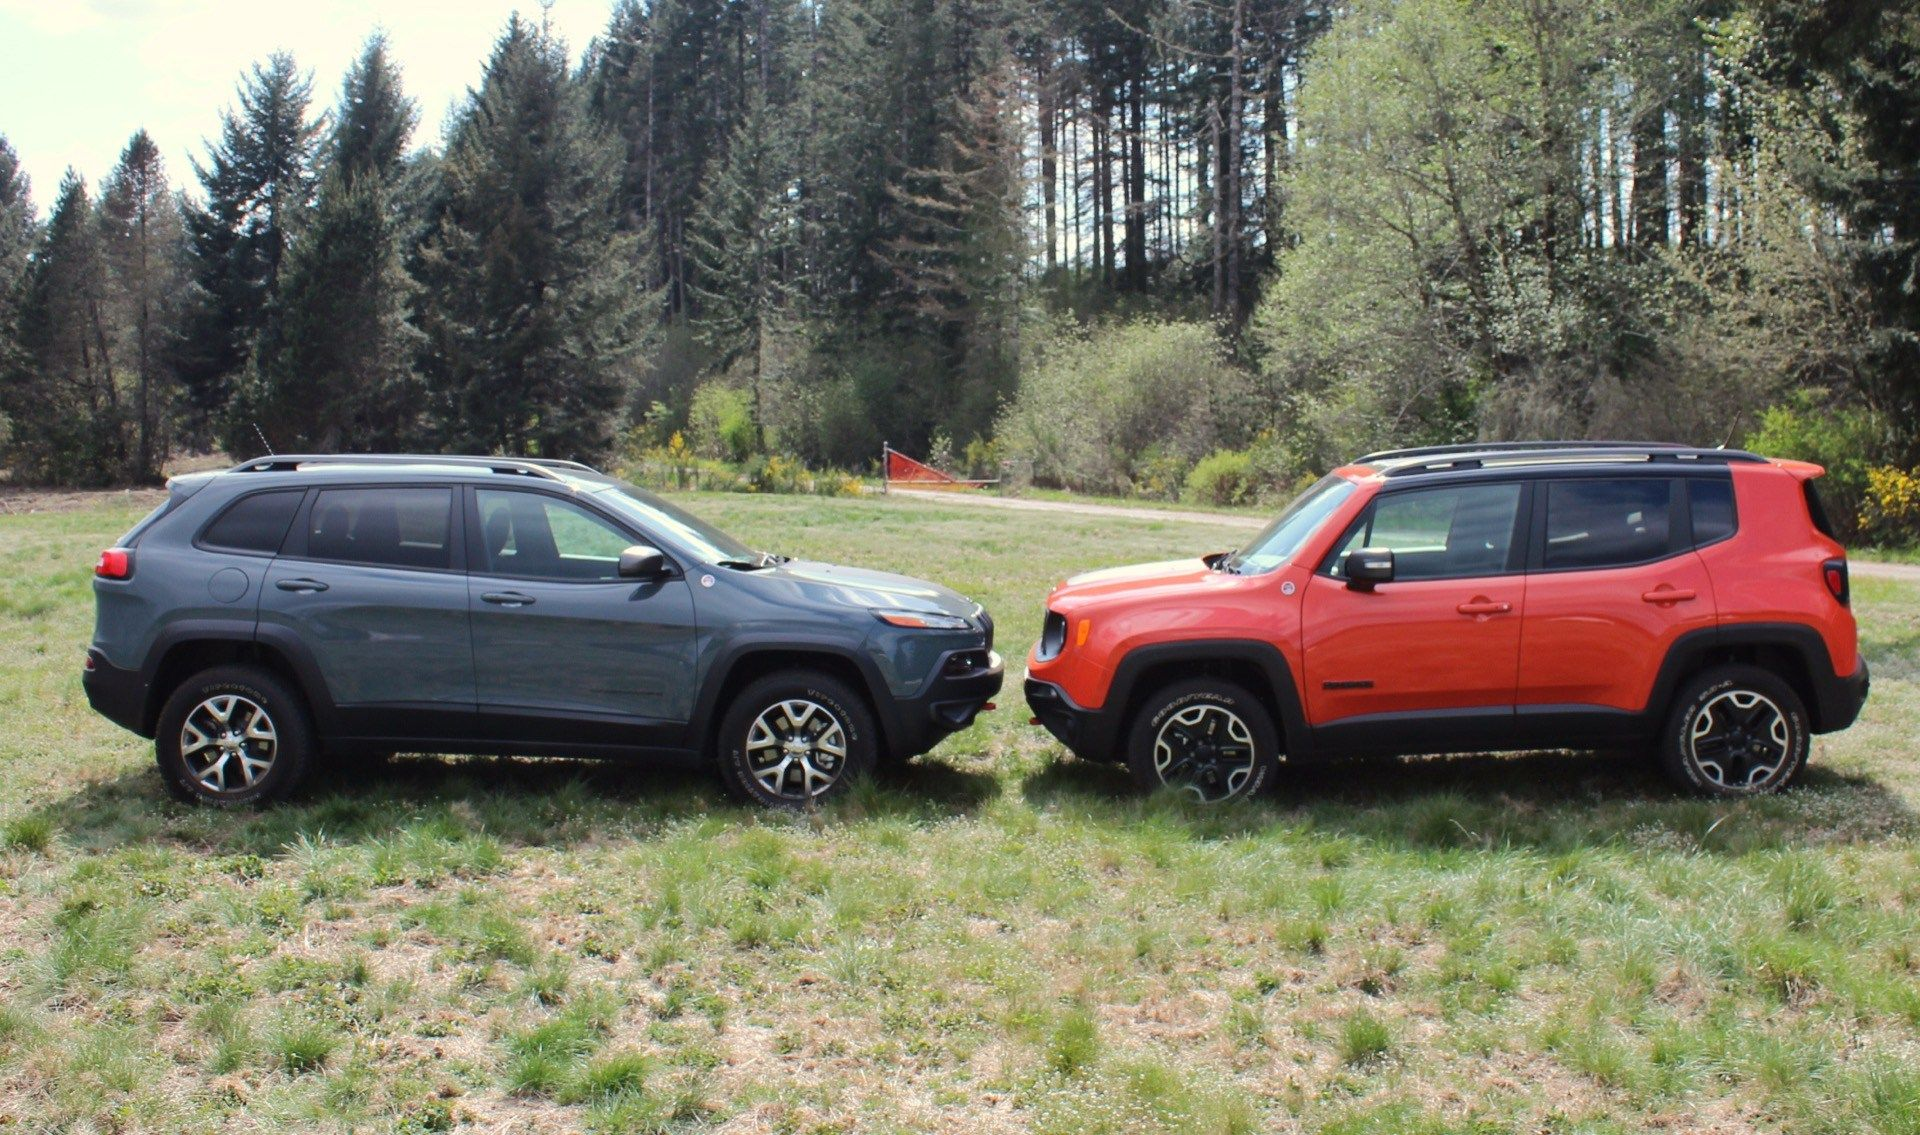 Awesome Jeep Cherokee Size Comparison